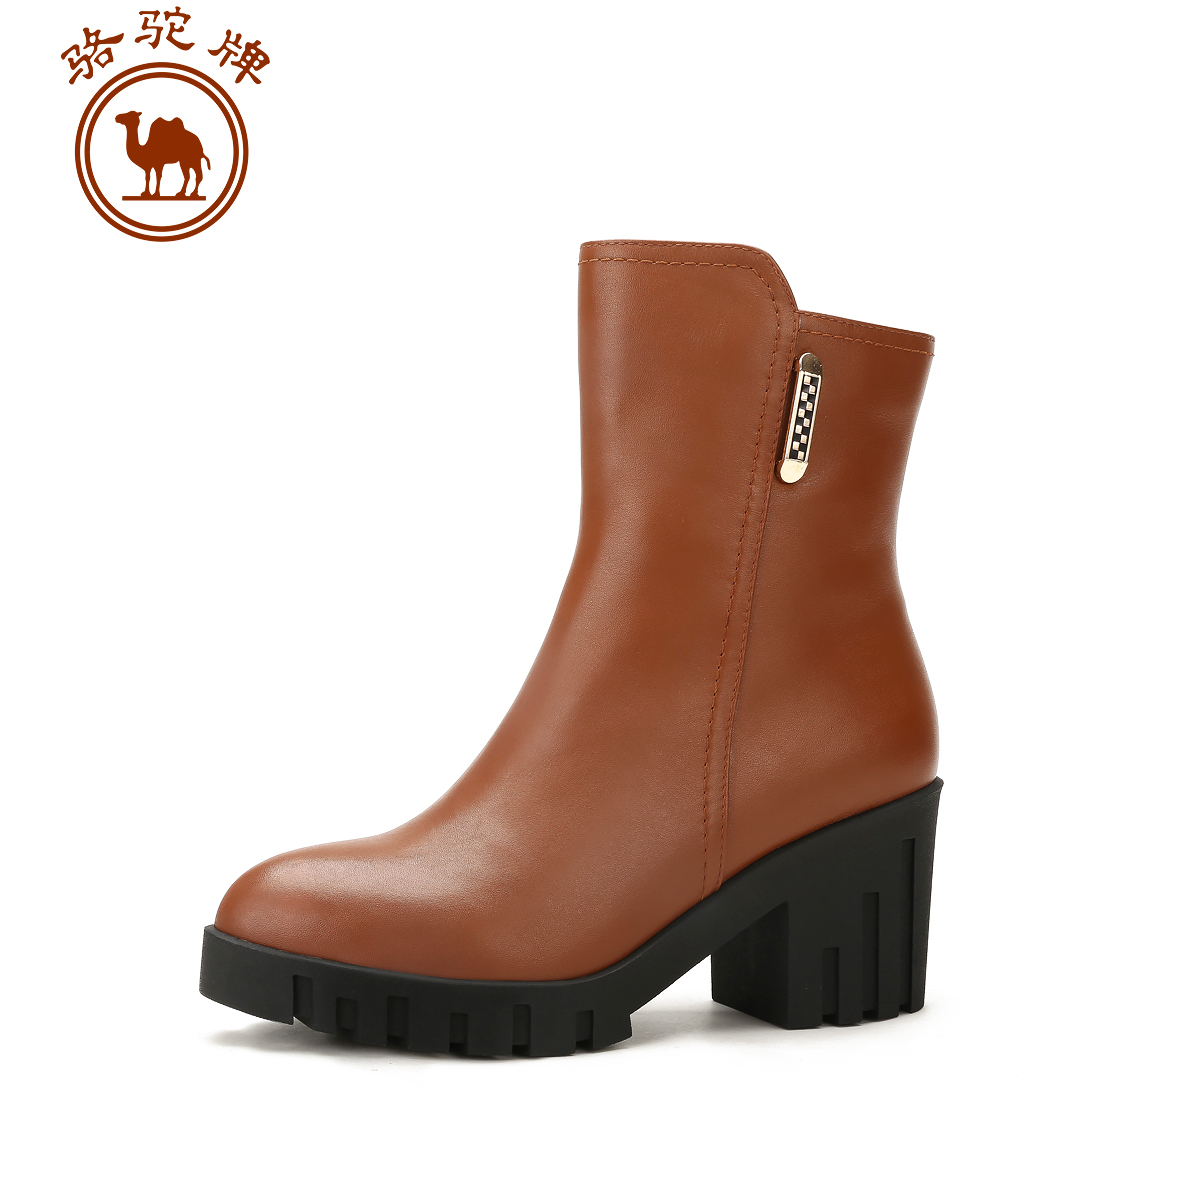 Camel new winter men's everyday casual leather shoes women high heels rough with women's boots in the tube side zipper boots women fashion